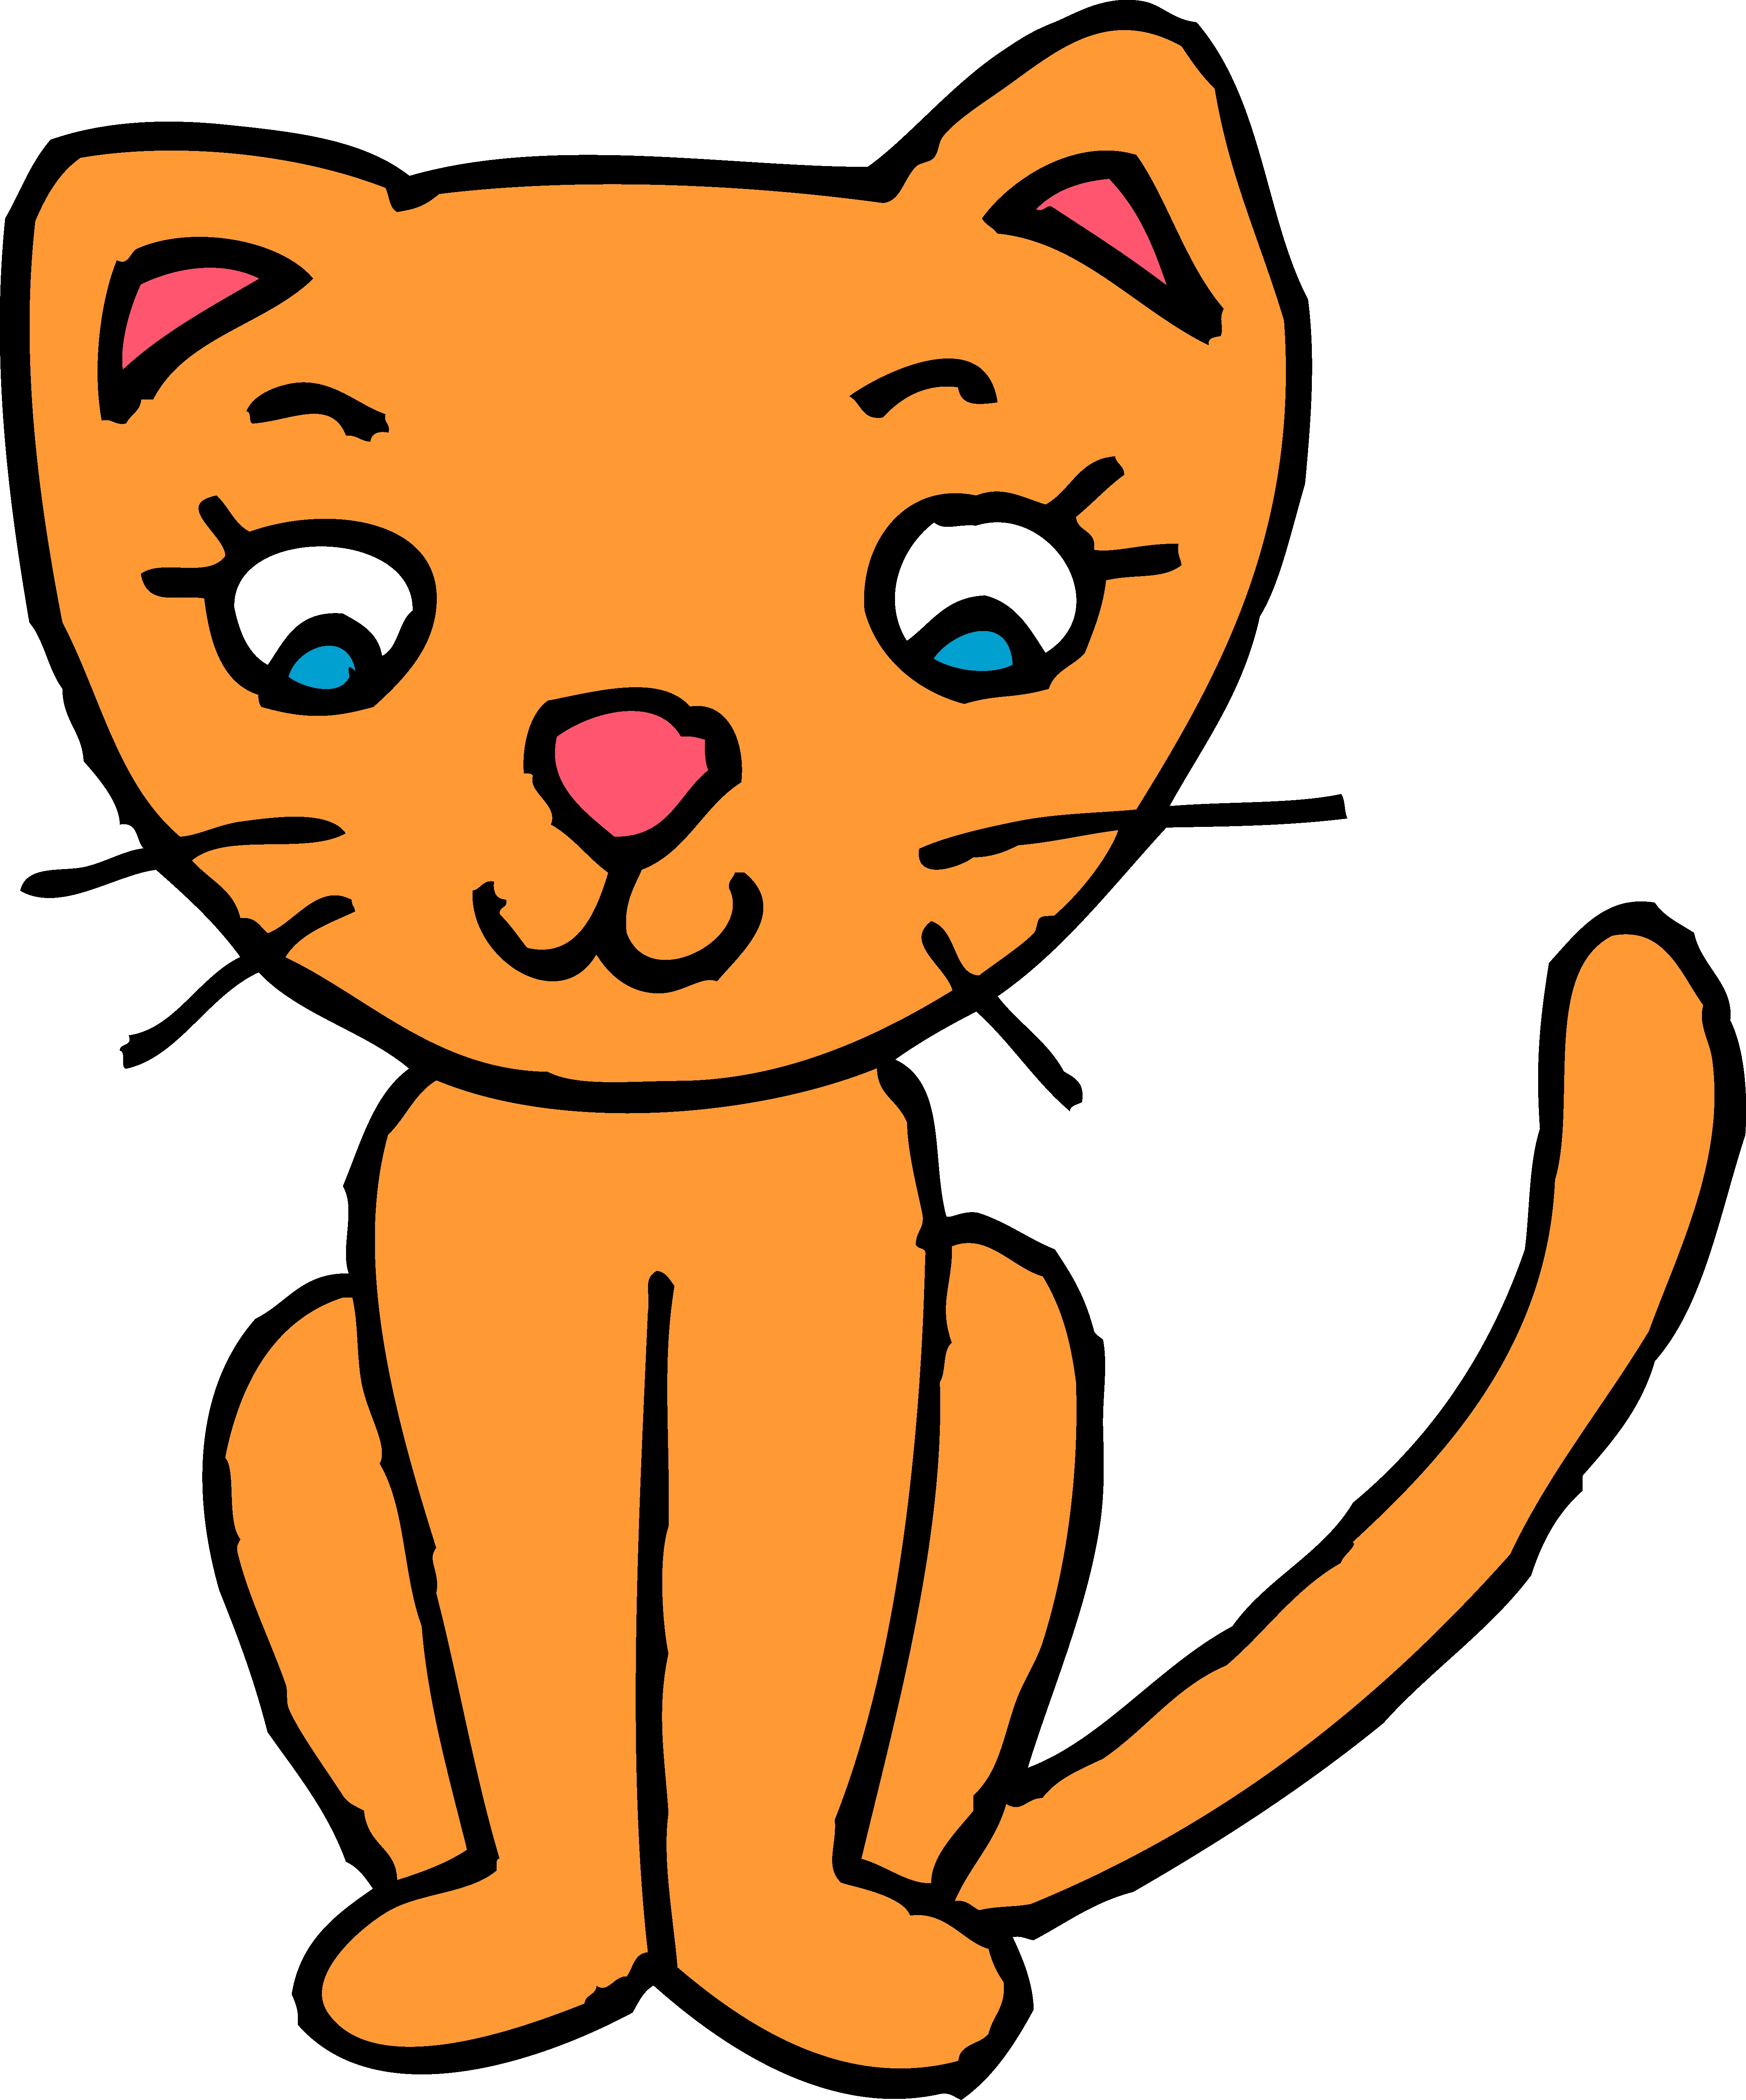 4637x5577 Awesome Top Cat Cartoon Images Free Collection Free Cartoon